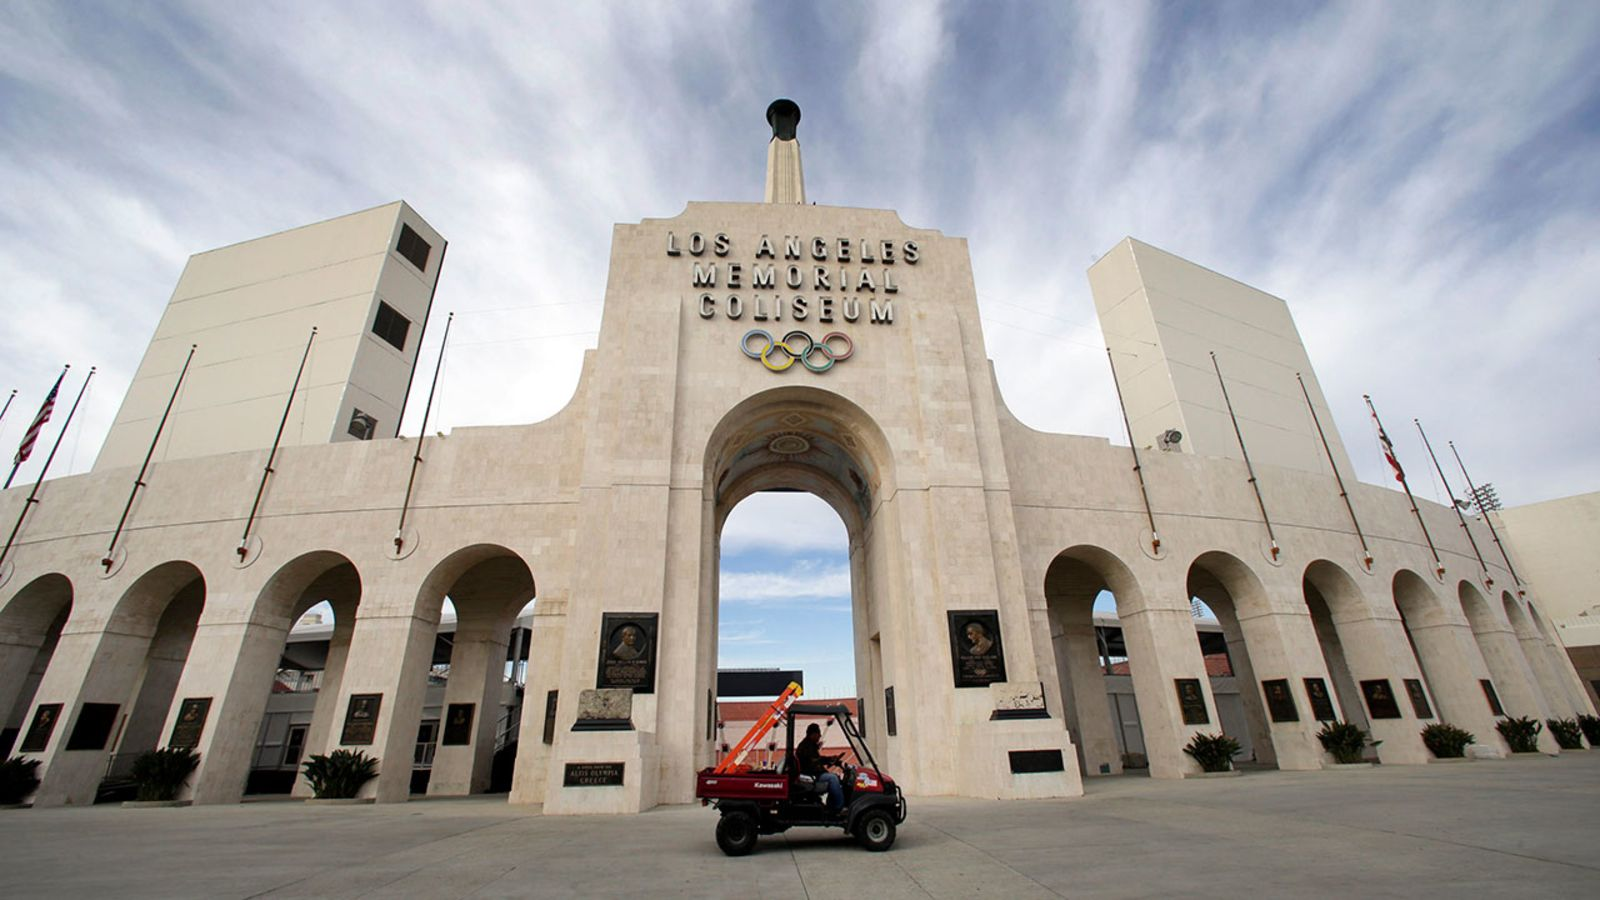 Usc United Airlines Agree To New Naming Rights Agreement For La Coliseum Field War Memorial United Airlines University Of Southern California